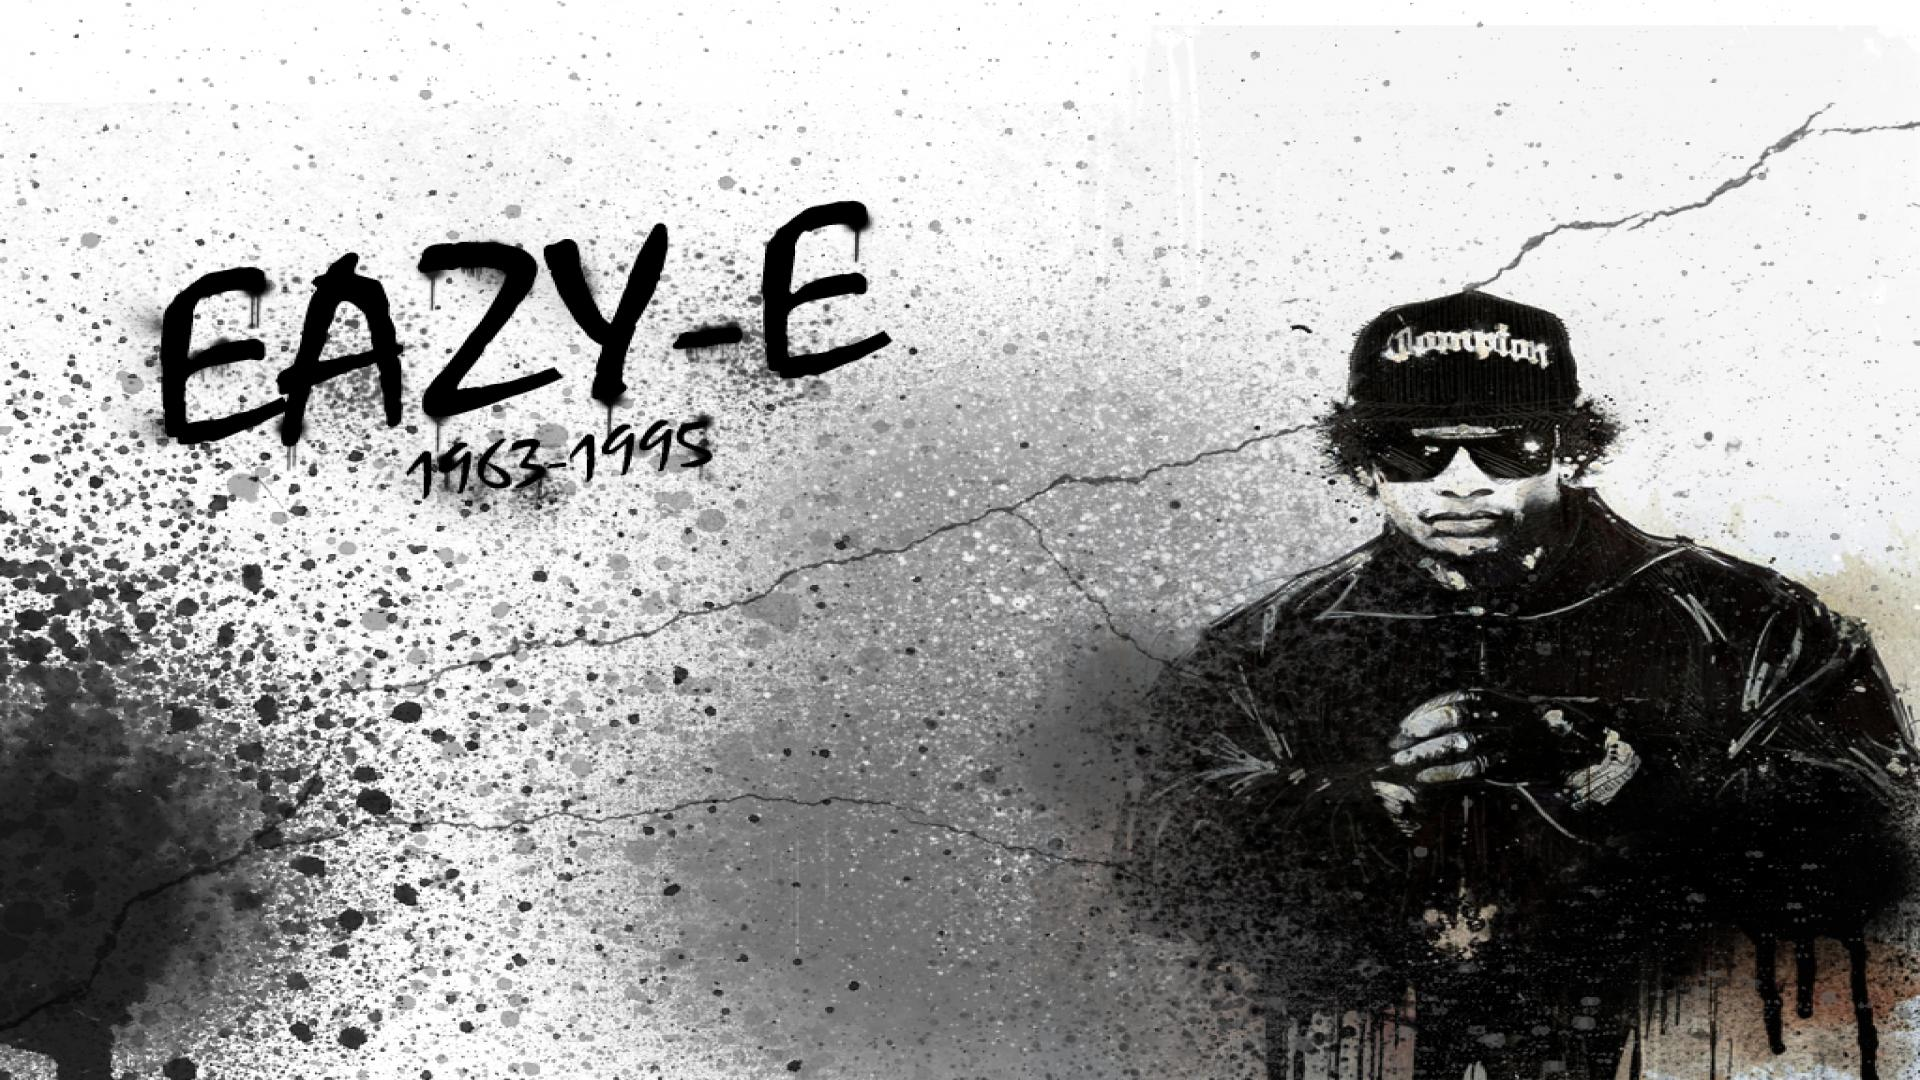 Eazy E Wallpapers 53BN18R 063 Mb   4USkY 1920x1080